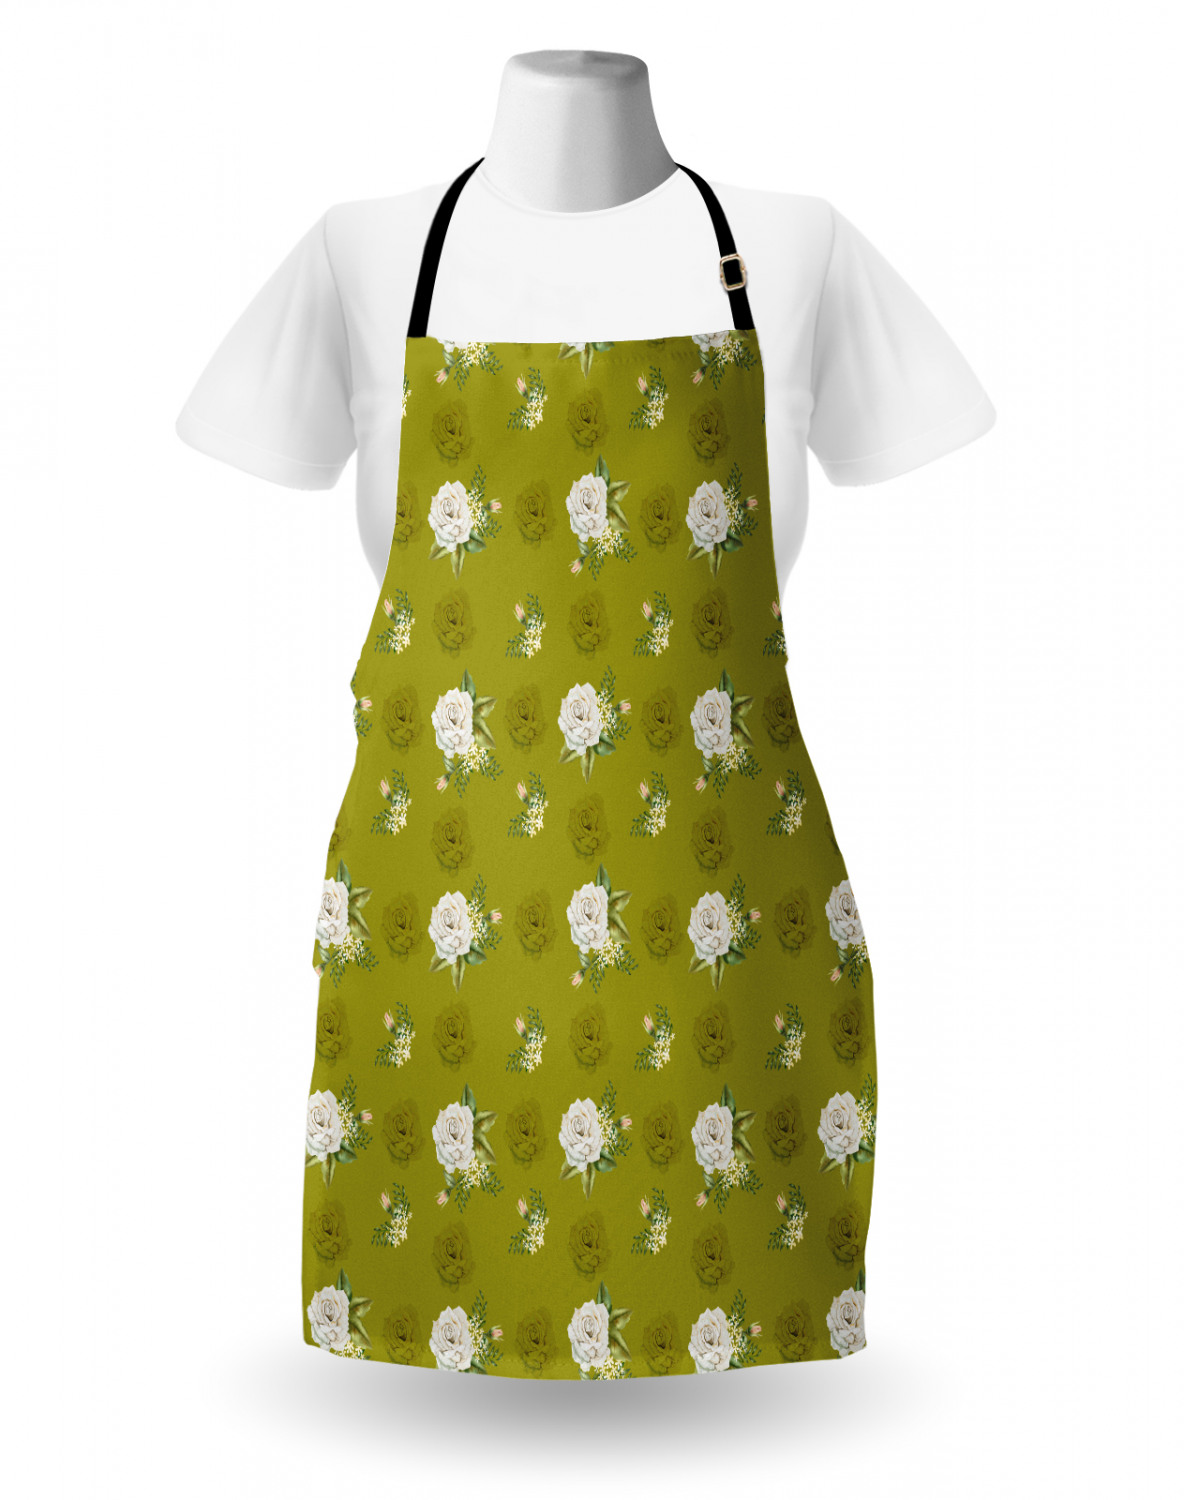 Ambesonne-Outdoor-Use-Apron-with-Adjustable-Neck-Strap-for-Gardening-and-Cooking miniatura 158